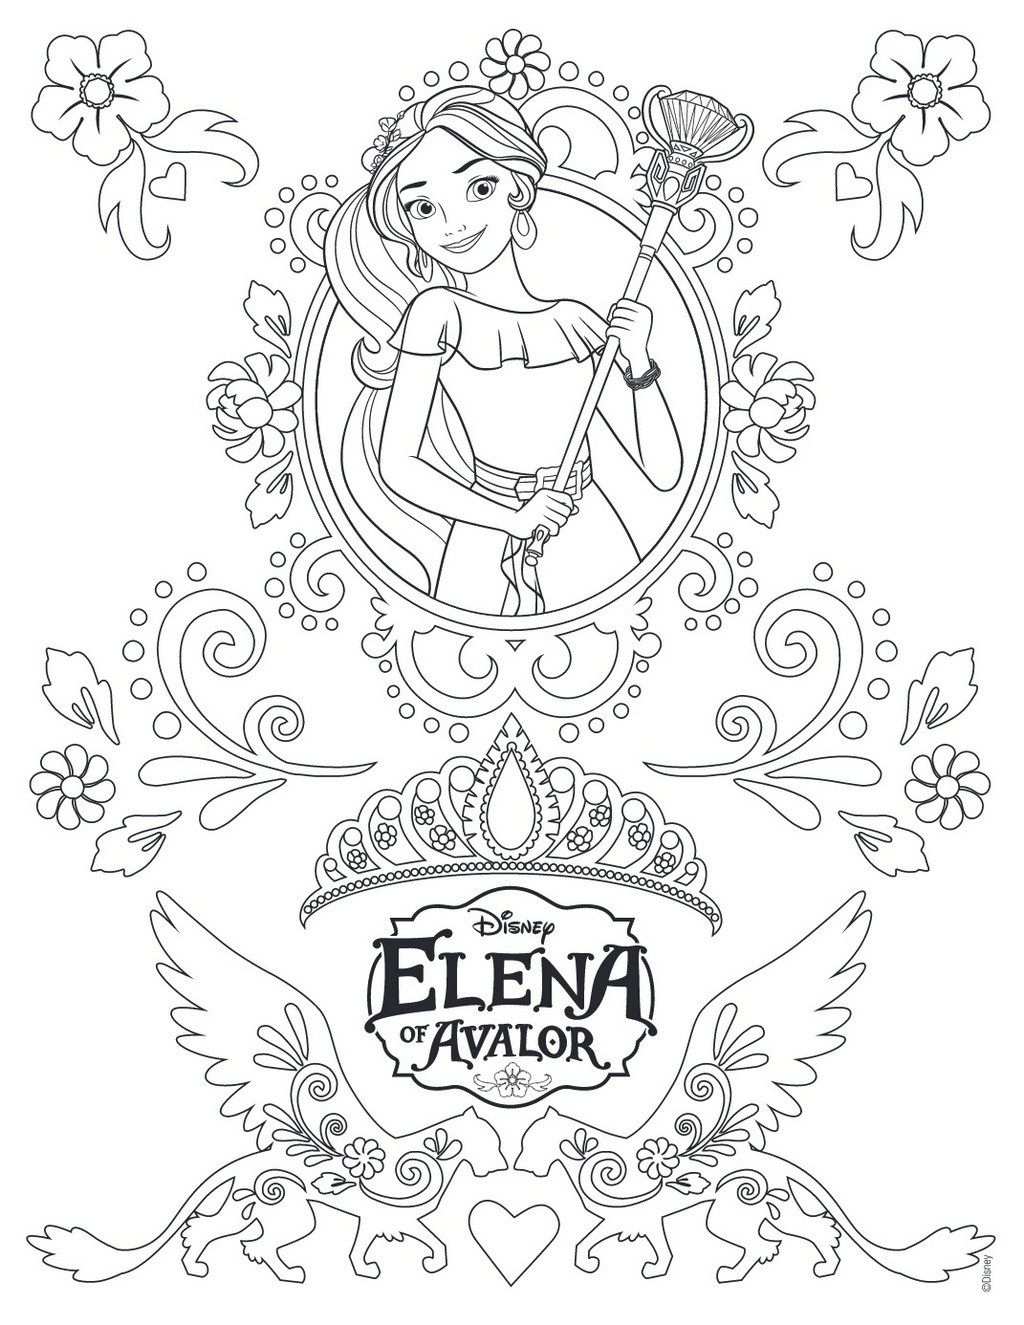 Elena Of Avalor Coloring And Activity Pages Disney Prinzessin